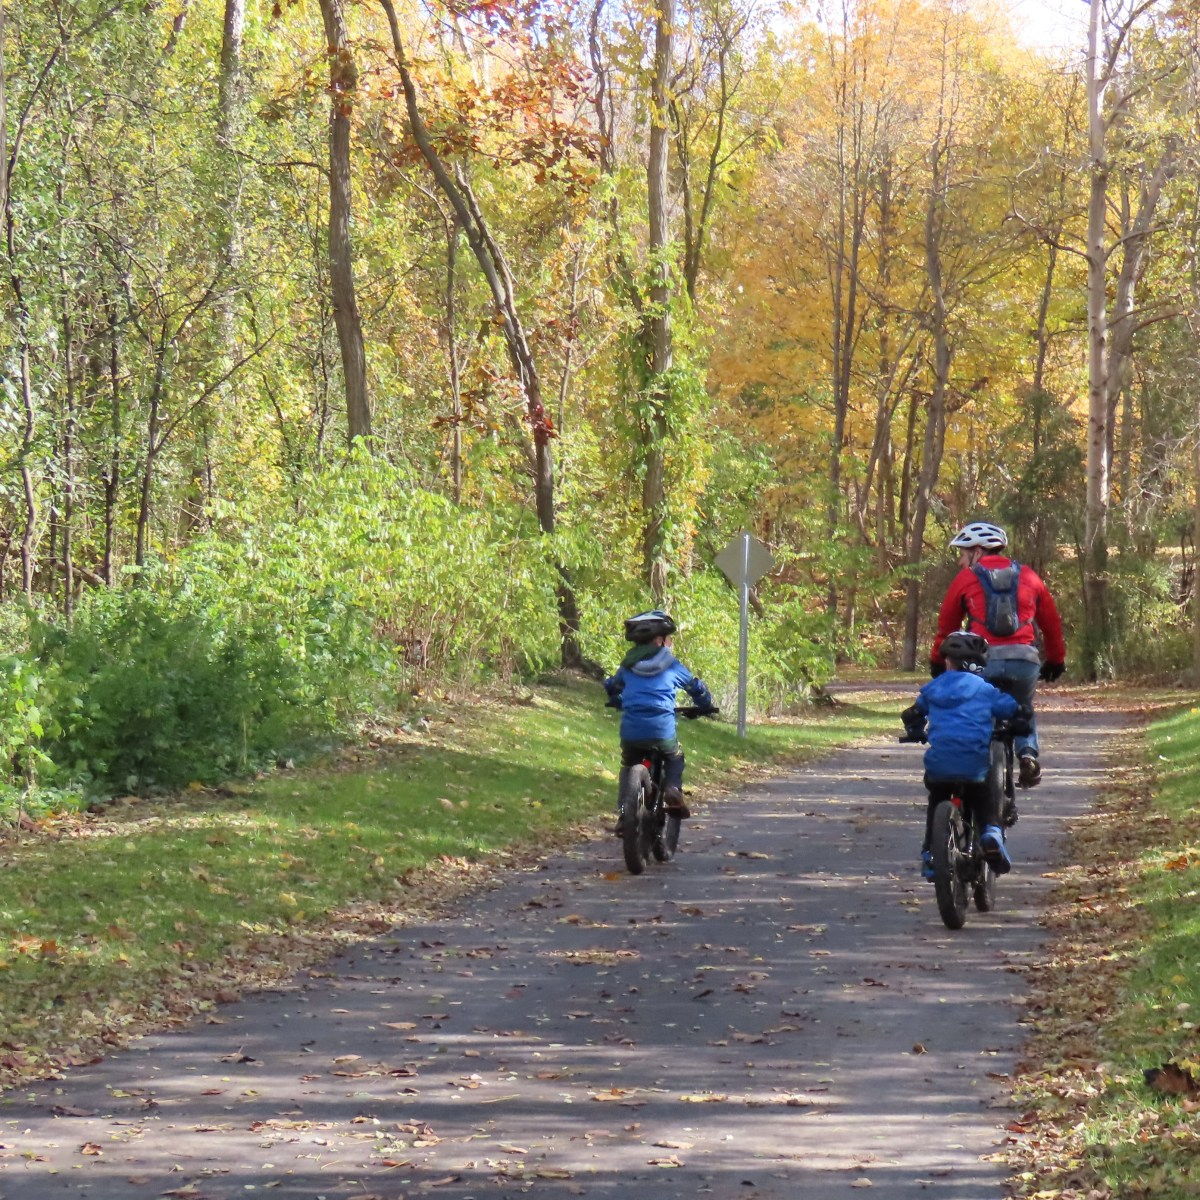 A man and two young children bike on path as leaves begin to change colors in the fall